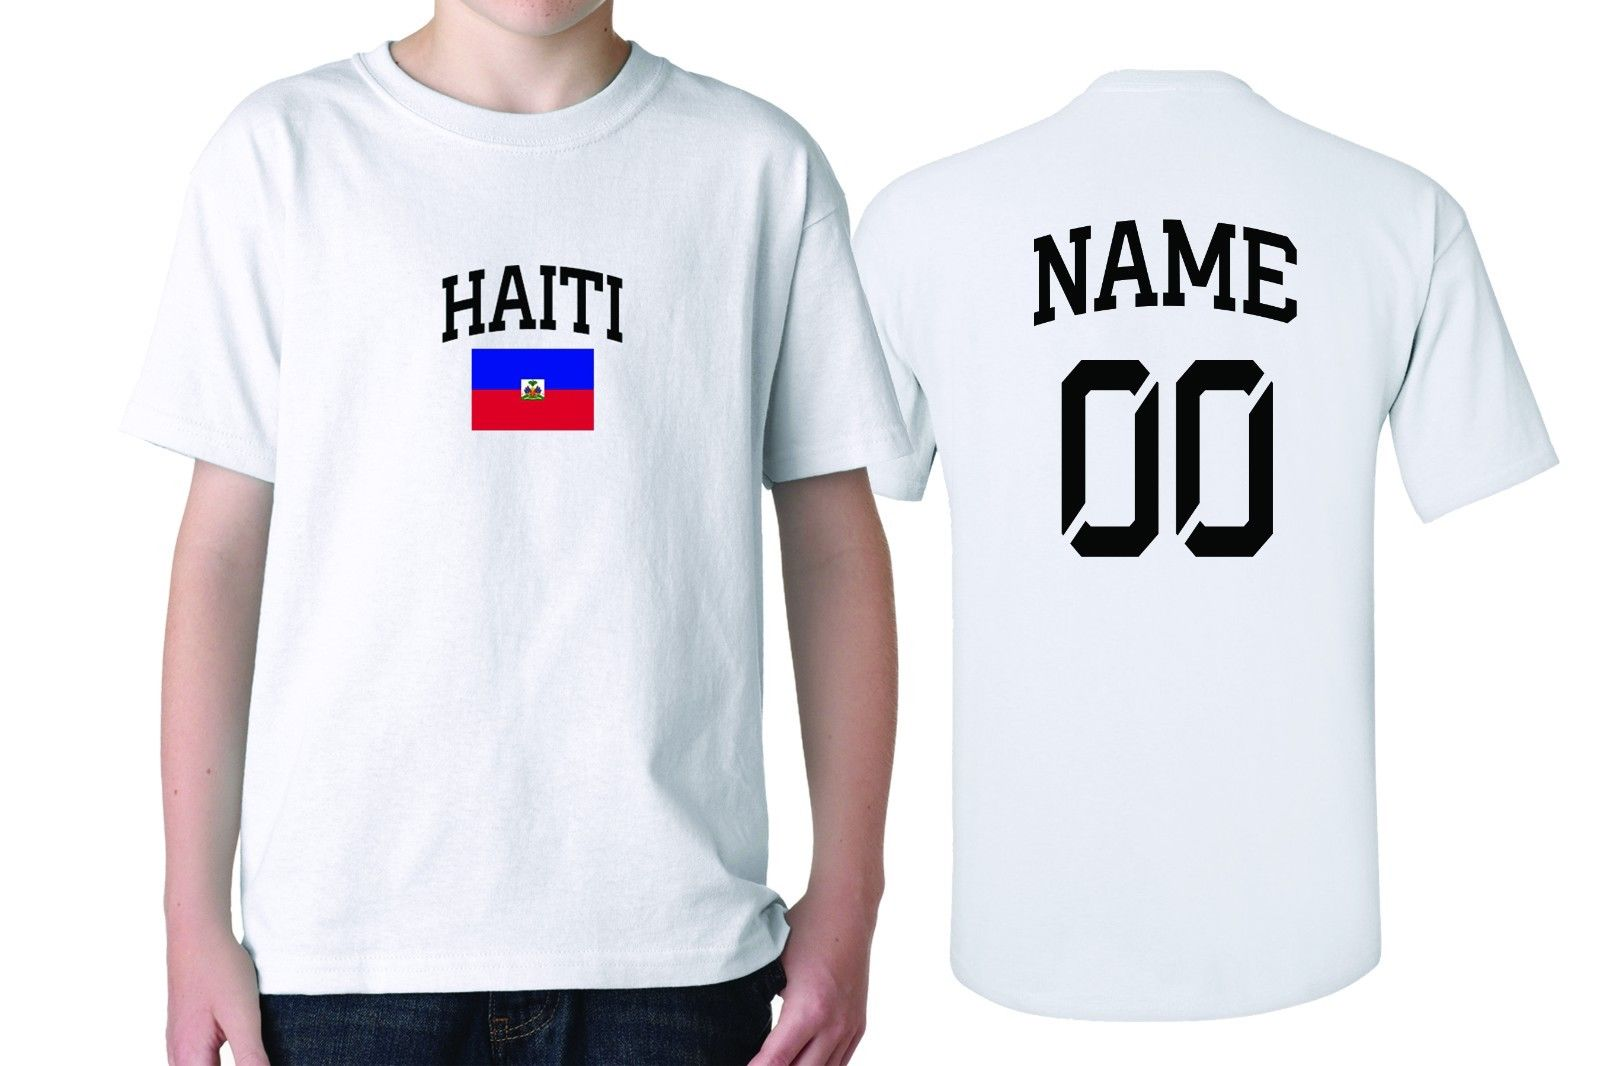 Tops & Tees T-shirts The Best Trust Me Im Haitian T Shirt Heritage Haiti Unisex More Size And Colors 2017-a730 We Take Customers As Our Gods